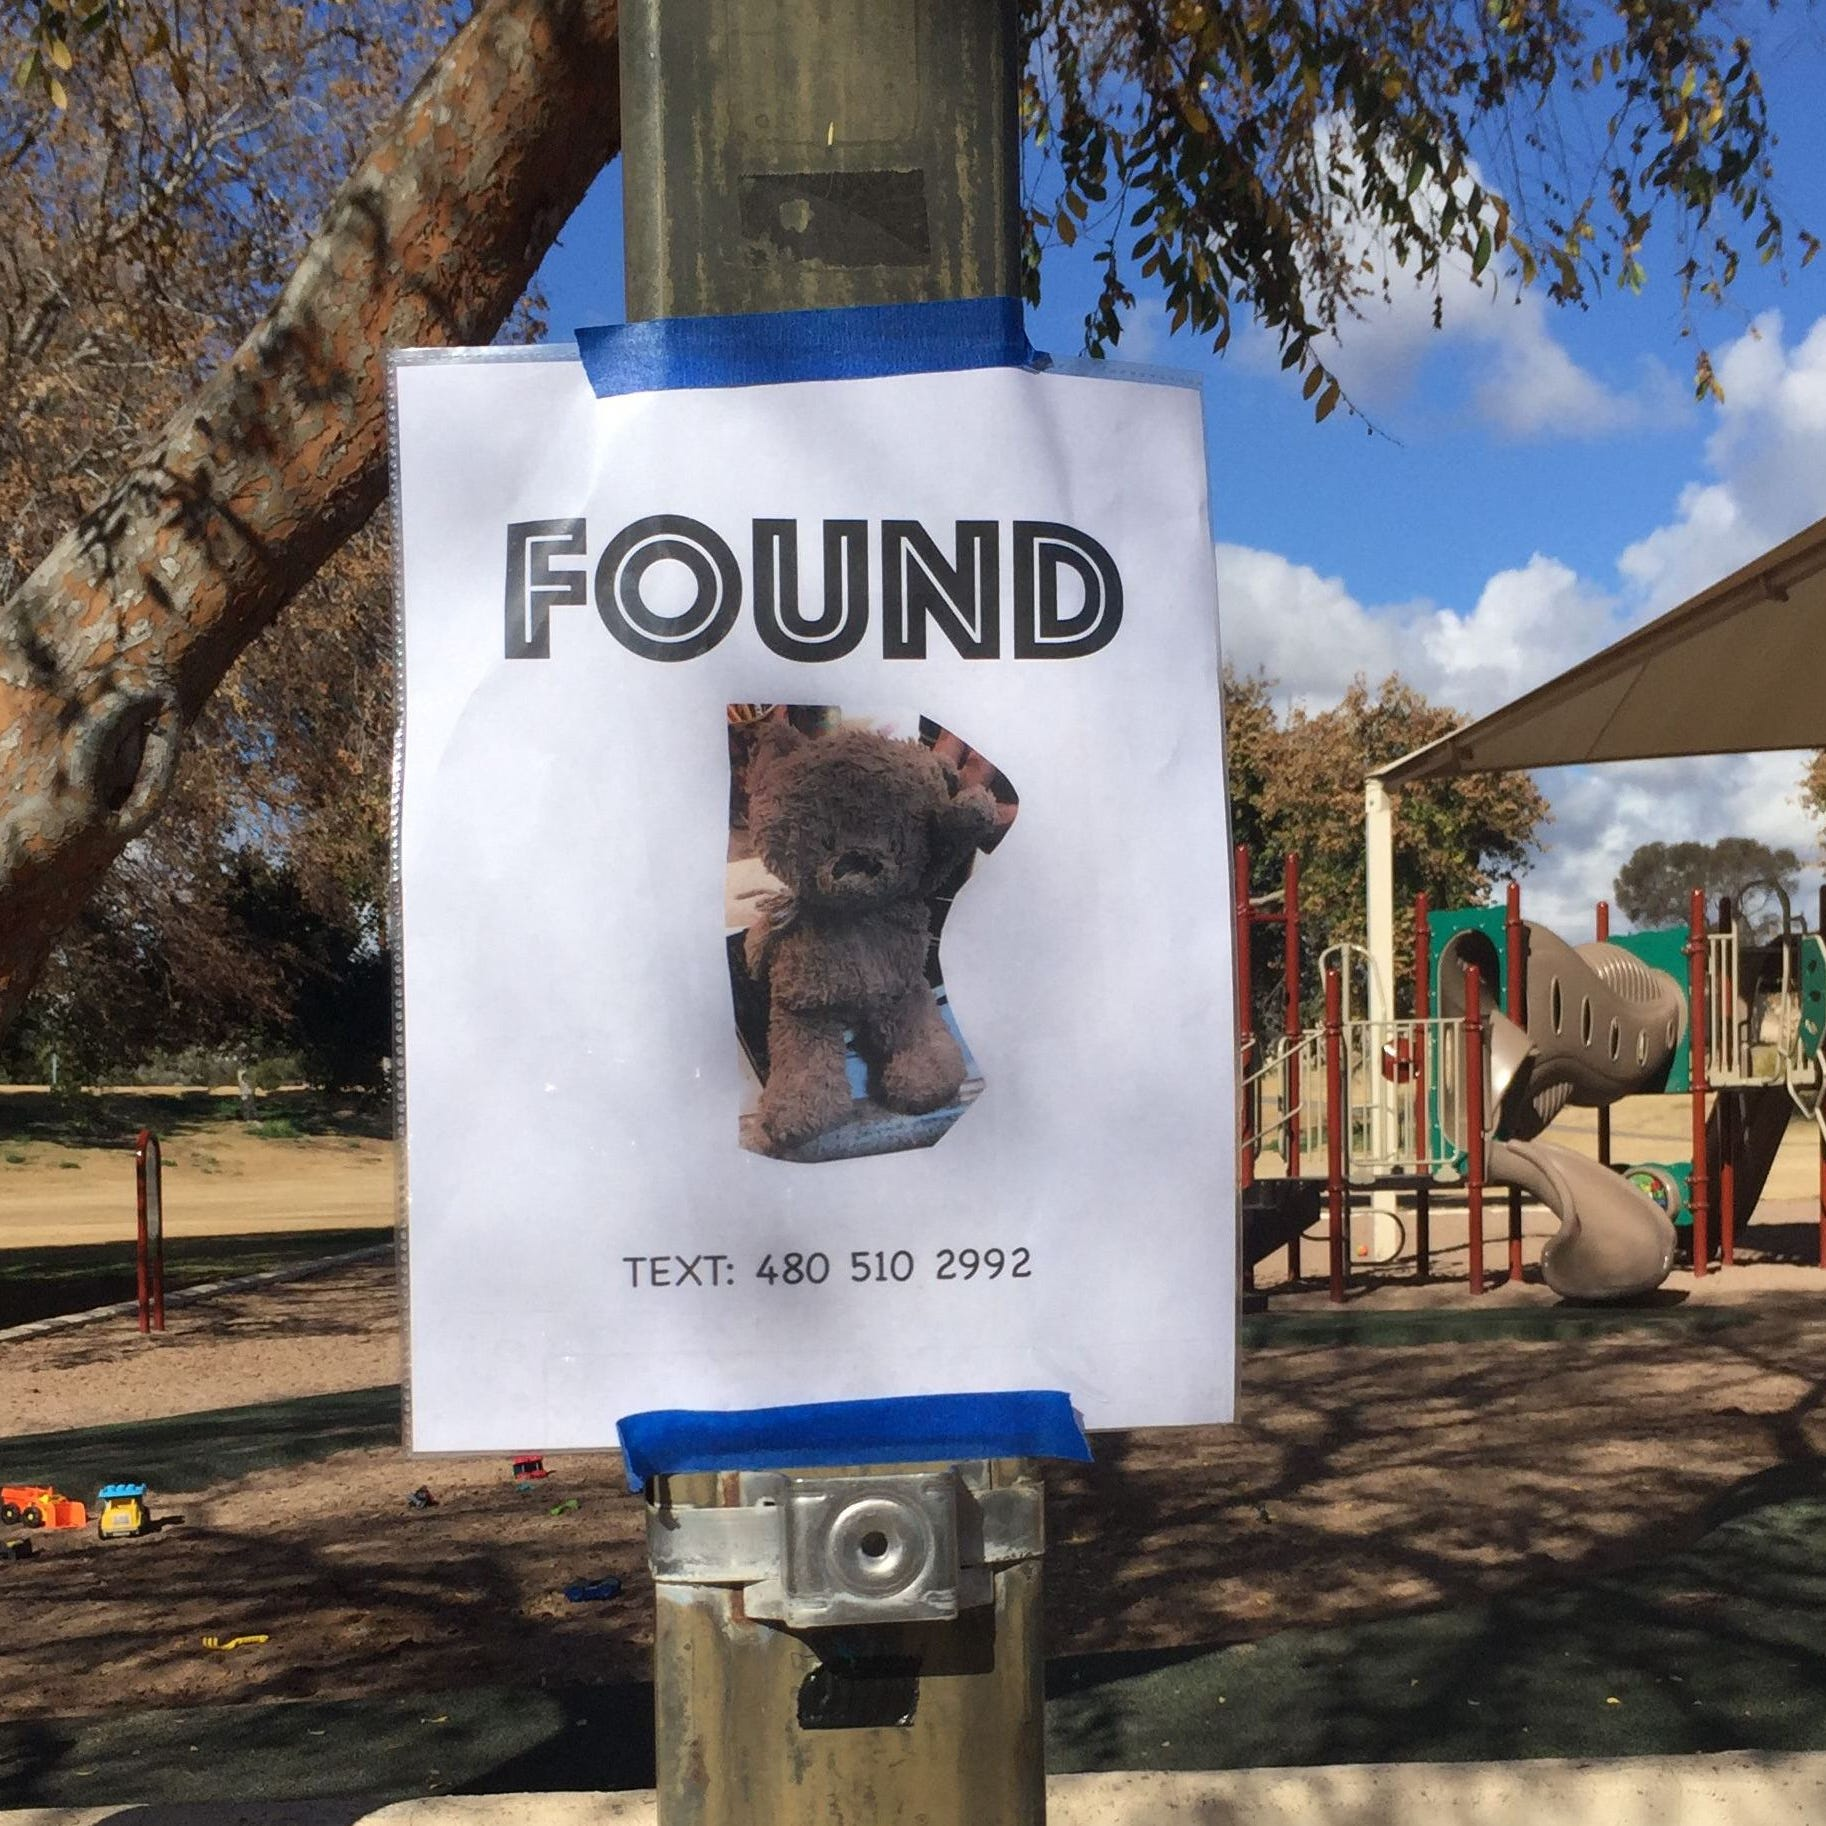 Mom-of-five Gina Horne Bernbaum posted flyers for a worn stuffed animal she found at an Arizona park because she knows firsthand how the loss of a beloved toy can affect a child.